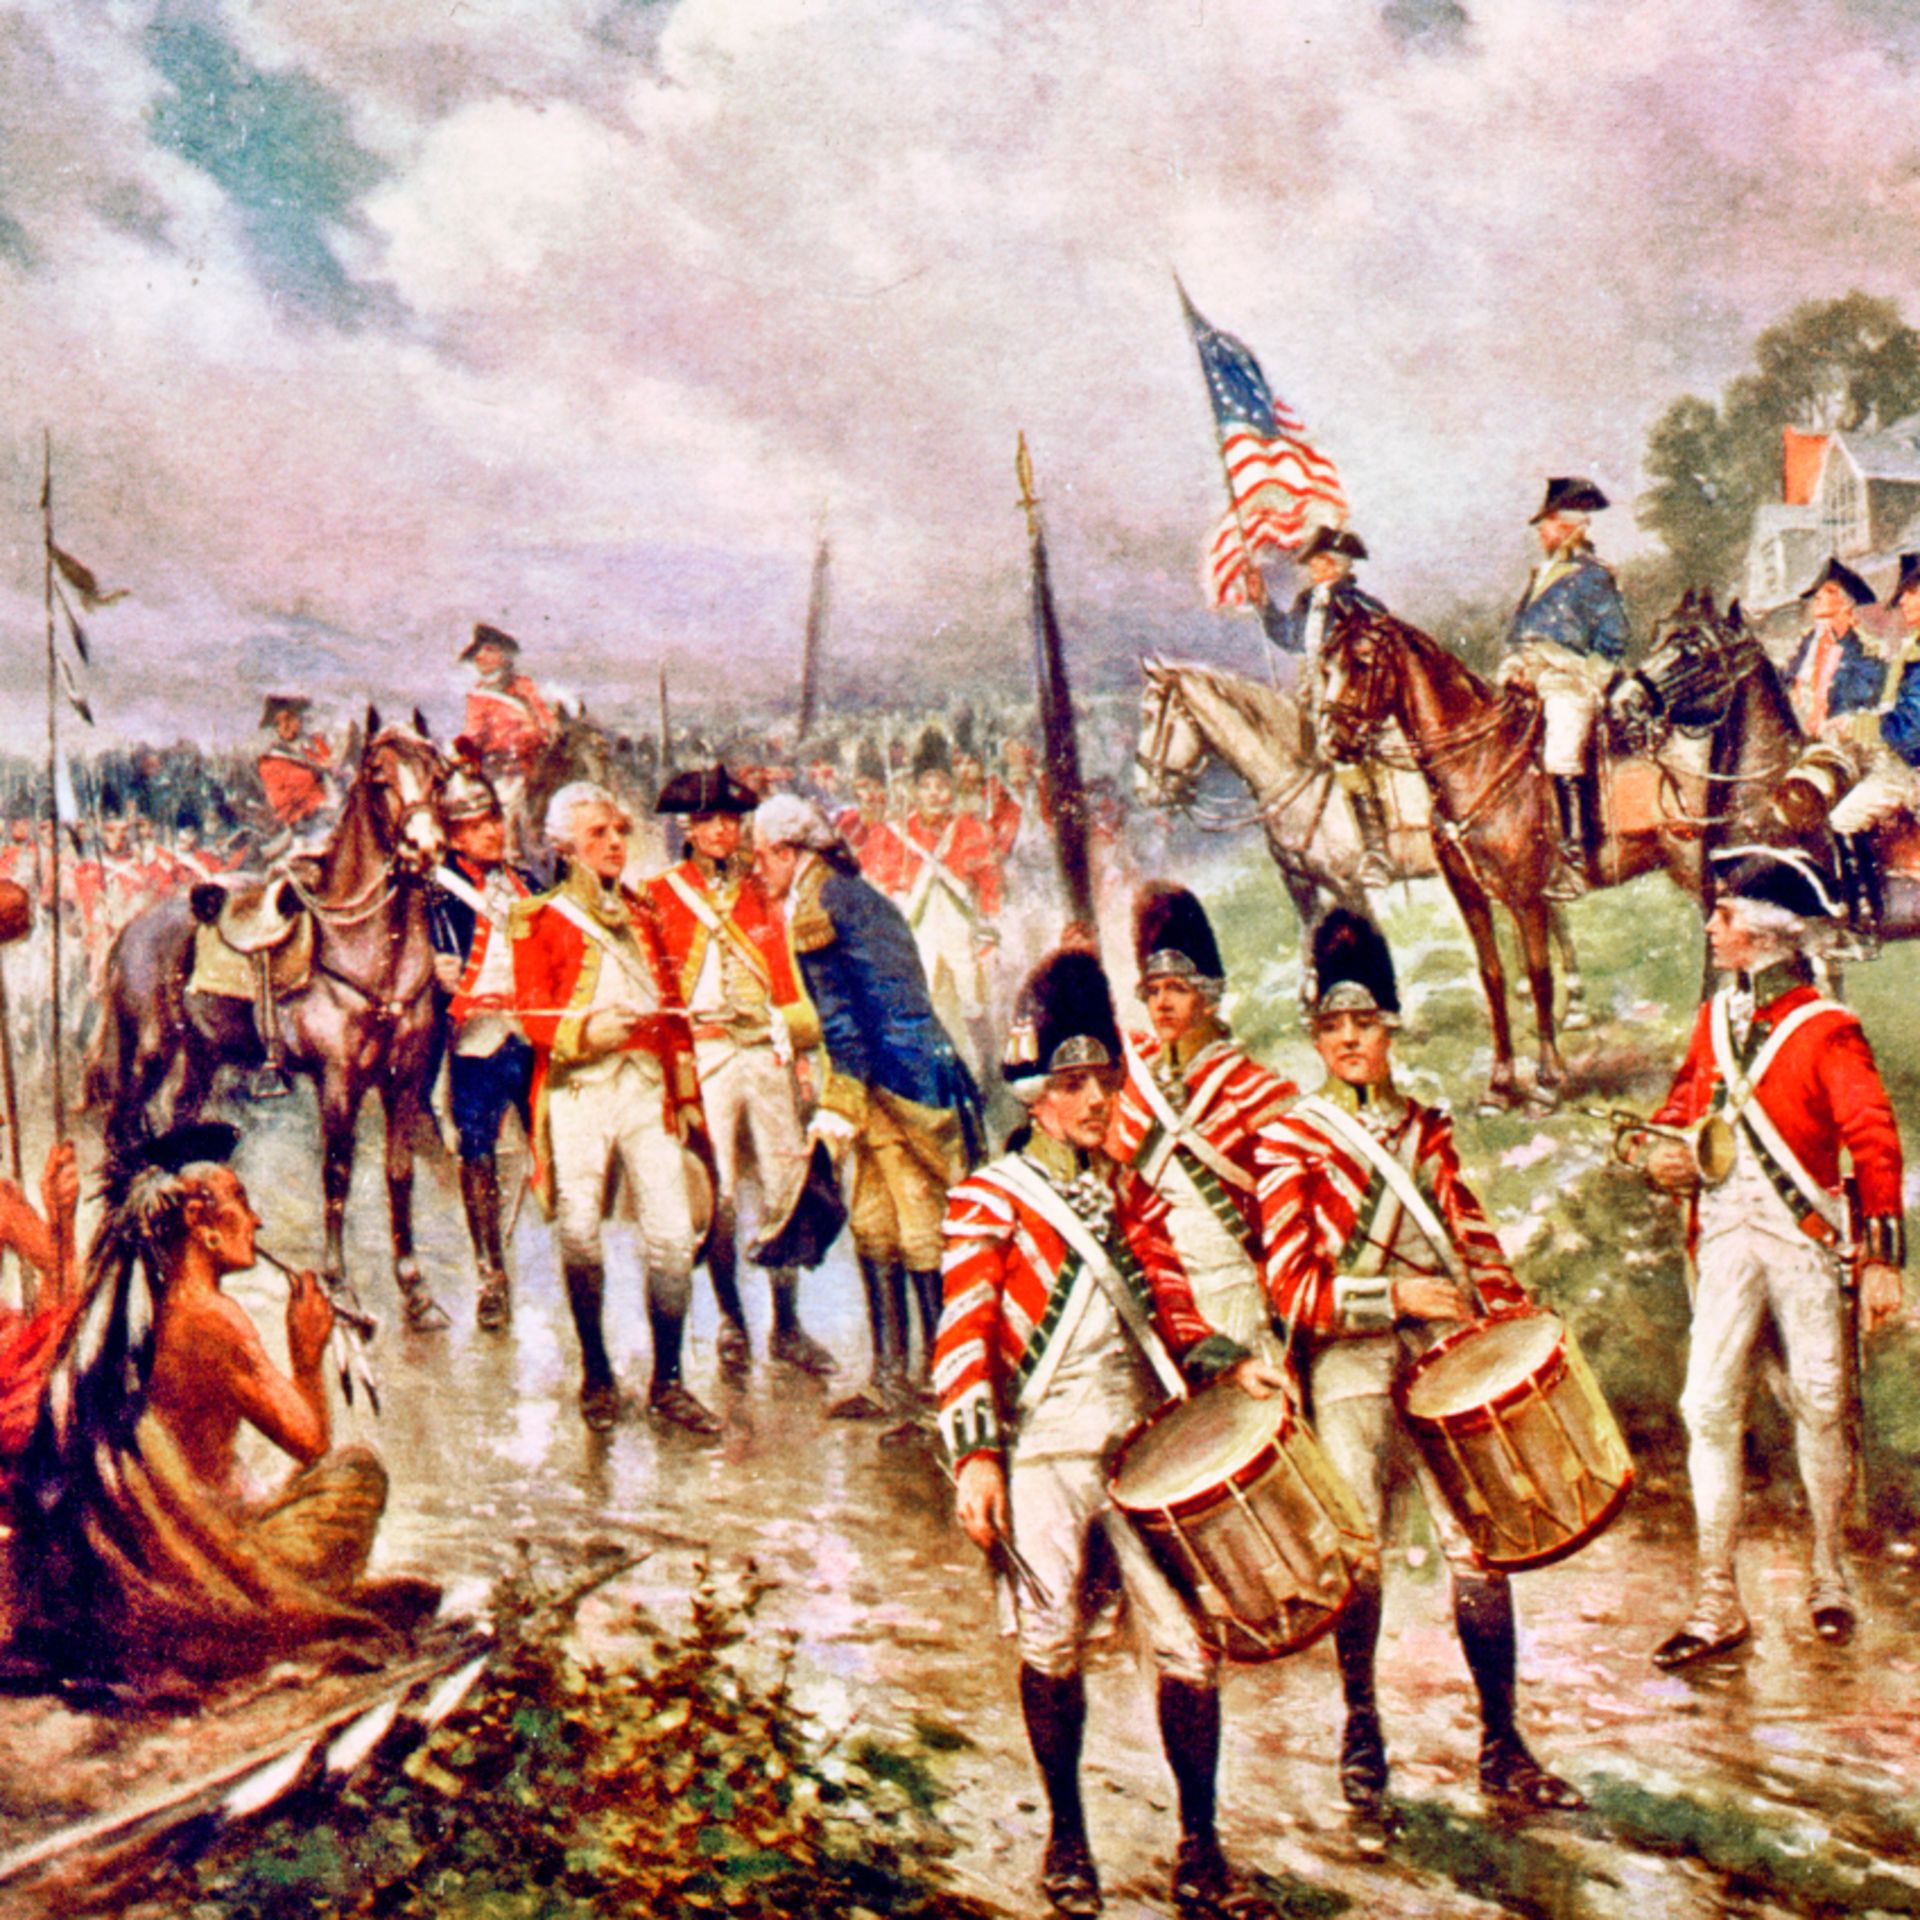 a history of the battle of saratoga Benedict arnold's performance at the battles of saratoga contributed to the american victory there but a bitter rivalry with his commander helped start arnold down the road to treason.